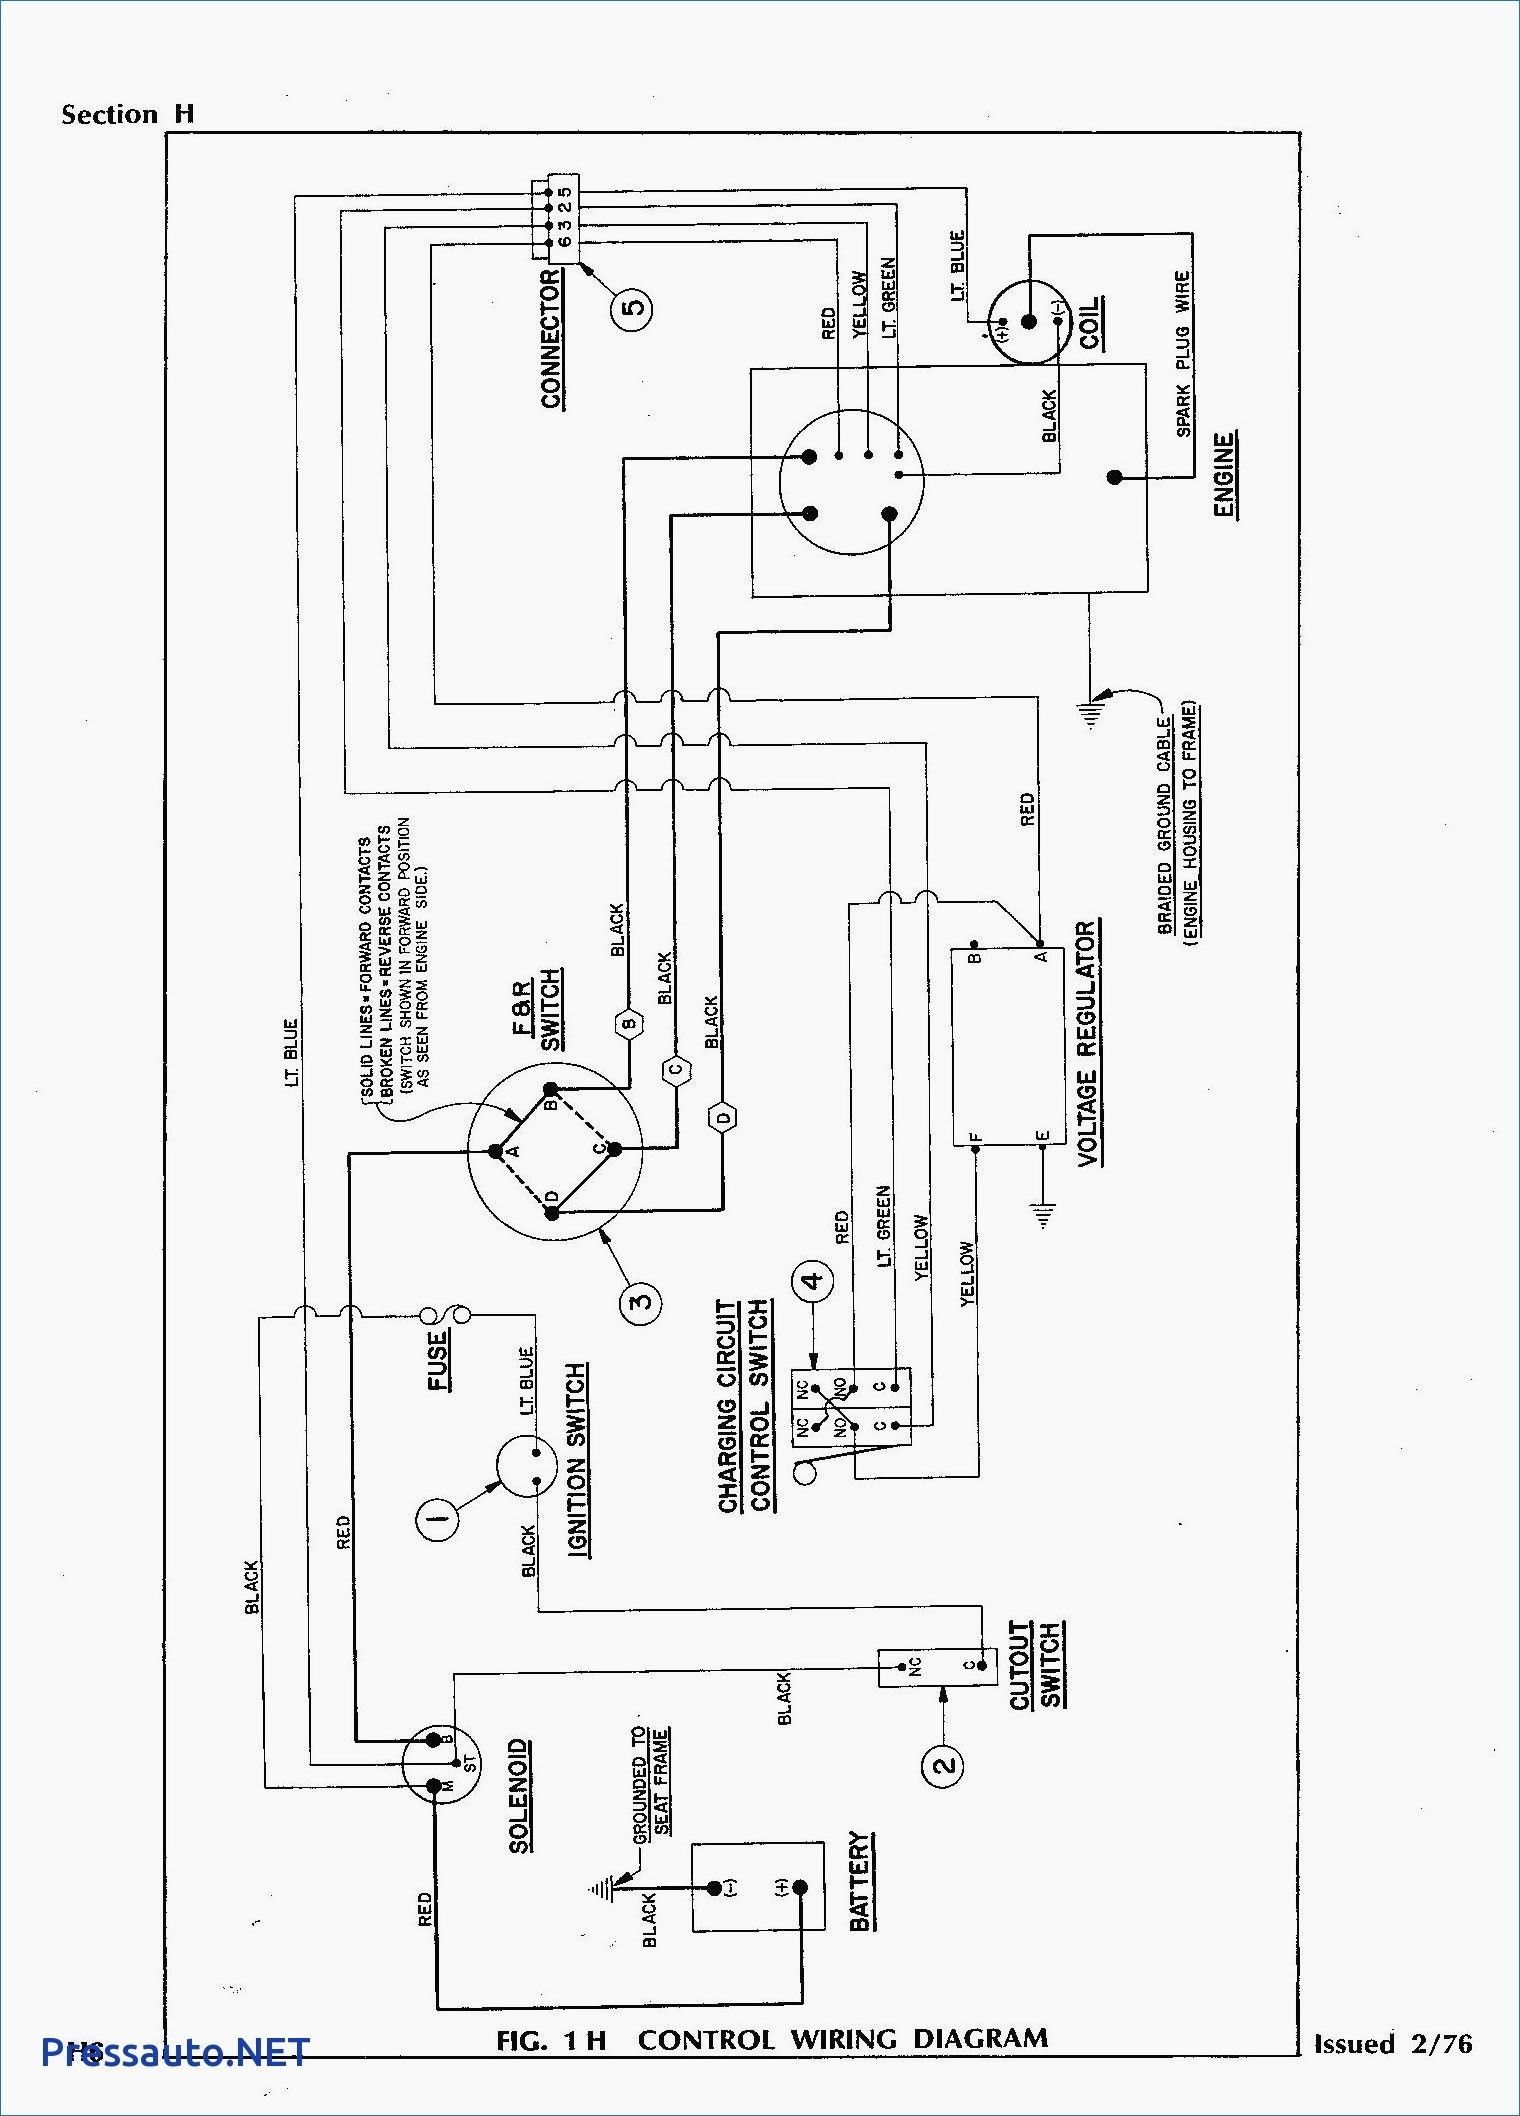 Unique Wiring Diagram 1990 Club Car Golf Cart Diagram Diagramtemplate Diagramsample Gas Golf Carts Ezgo Golf Cart Club Car Golf Cart